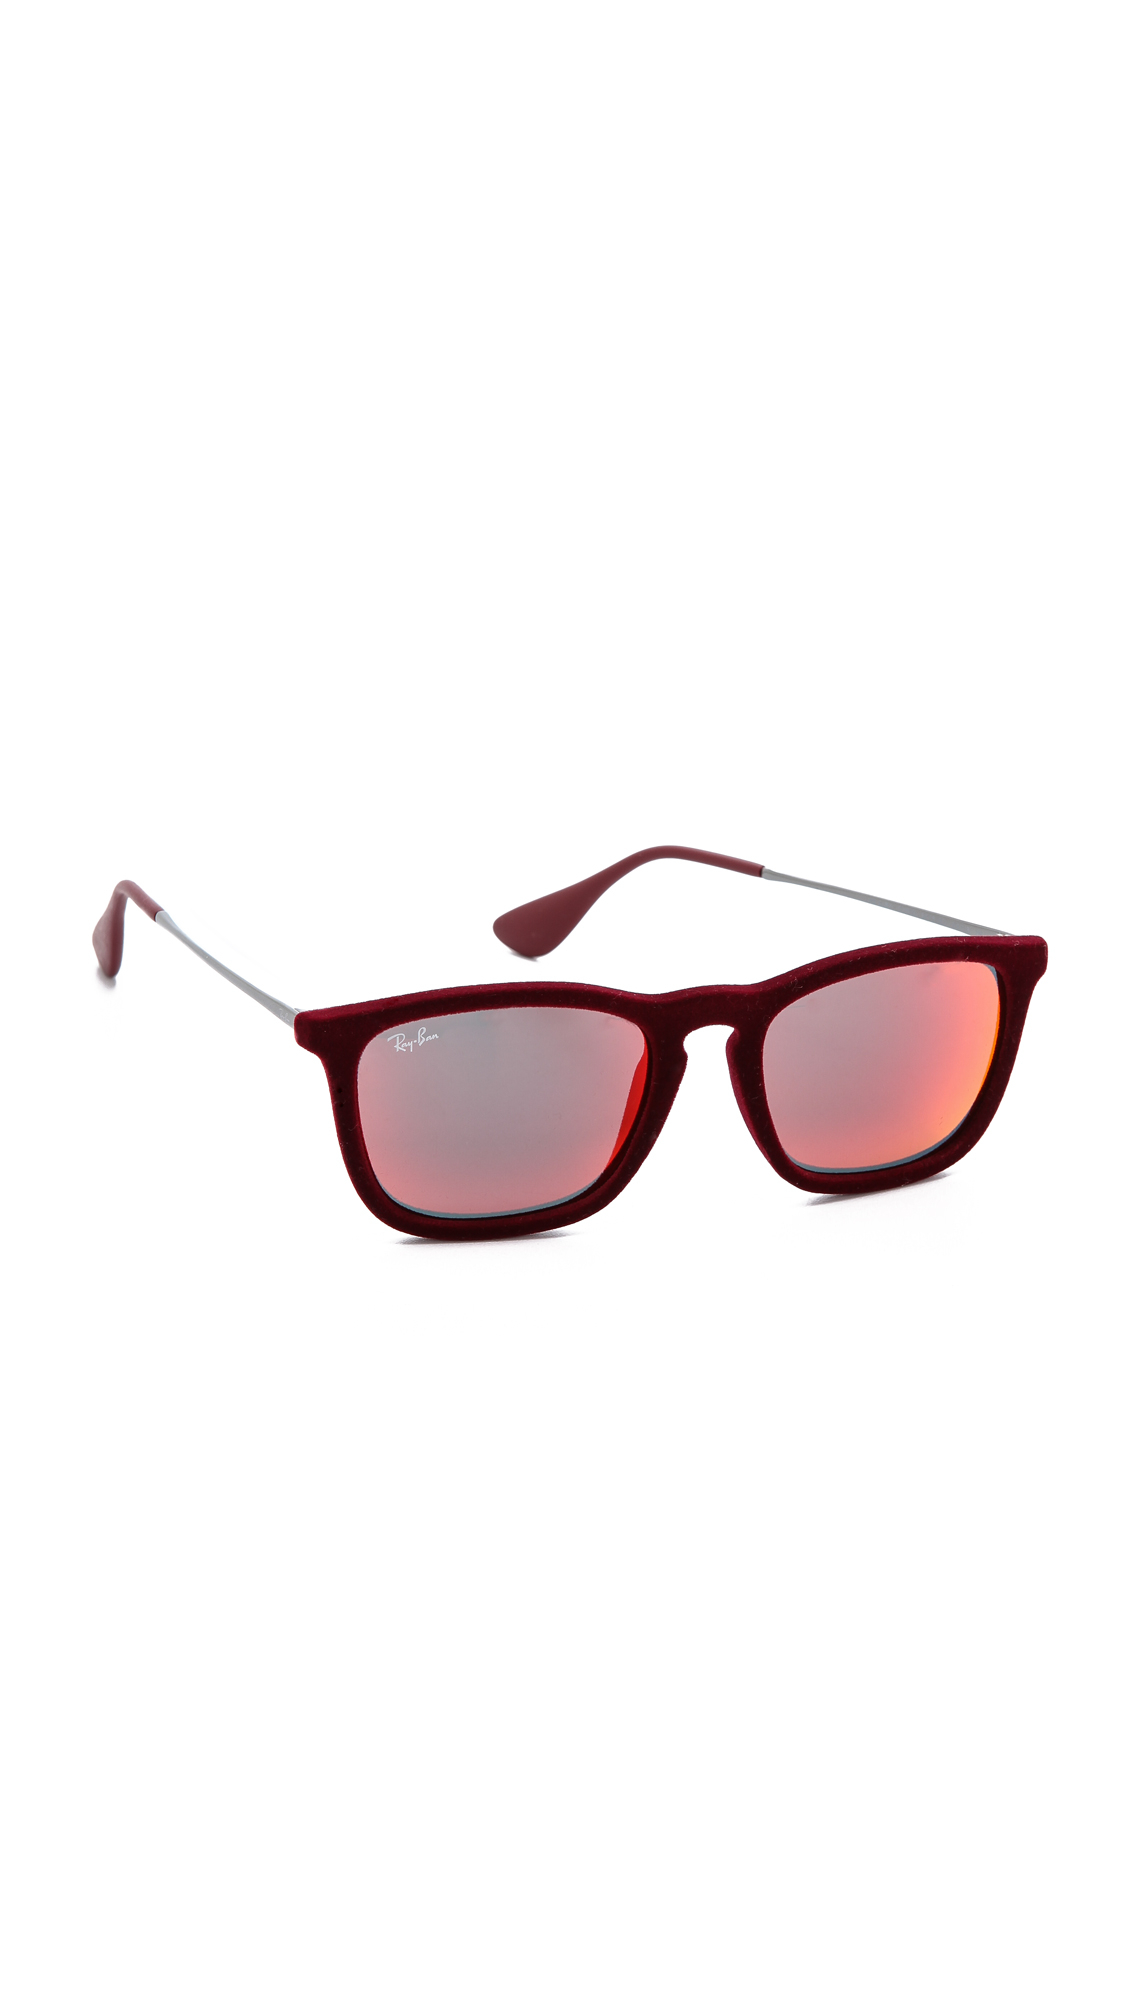 ray ban youngster clubmaster sunglasses  gallery